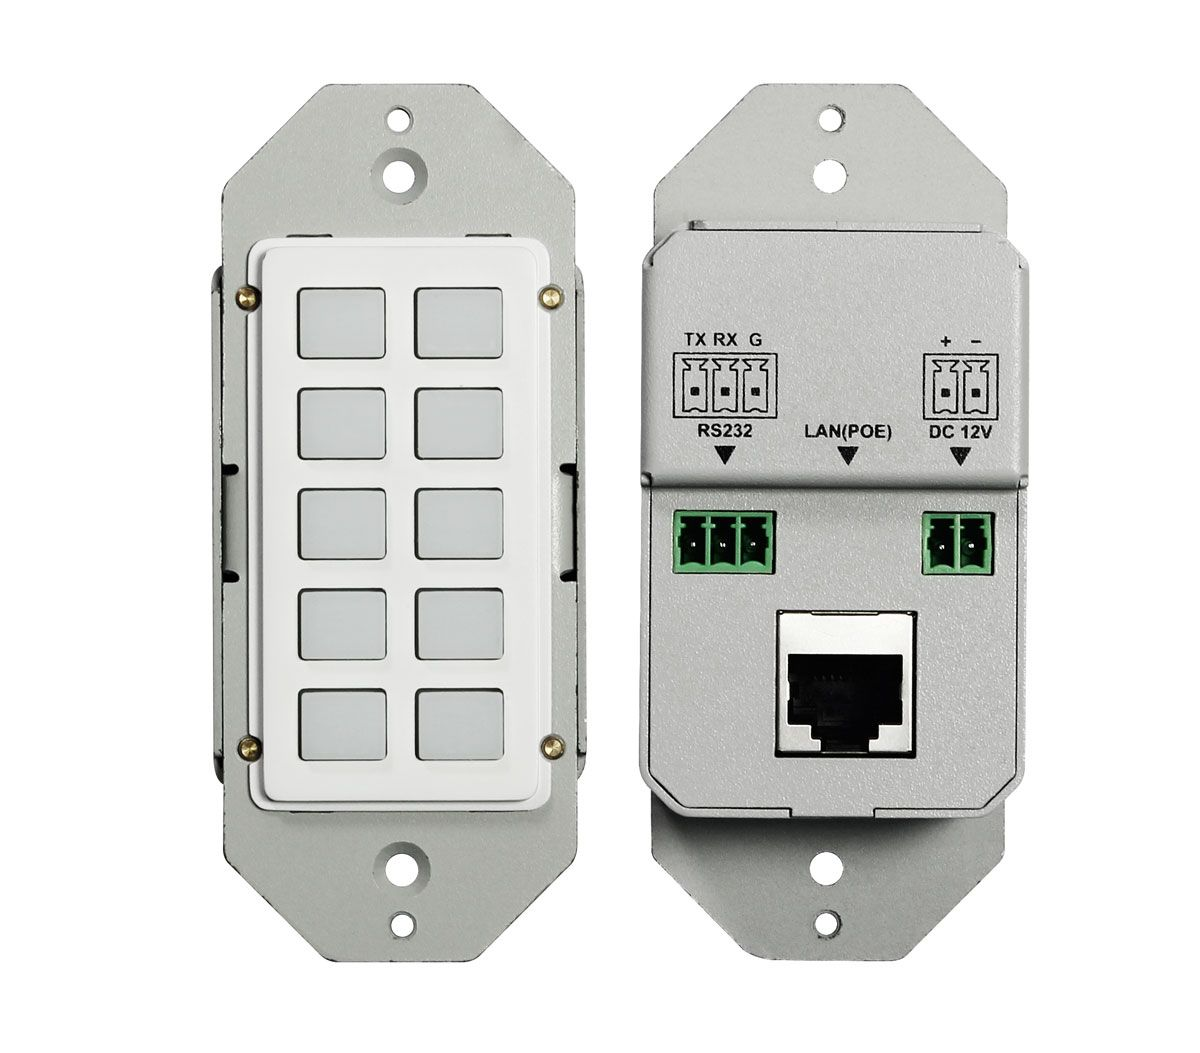 10-Button Keypad for WolfPack Matrix Systems